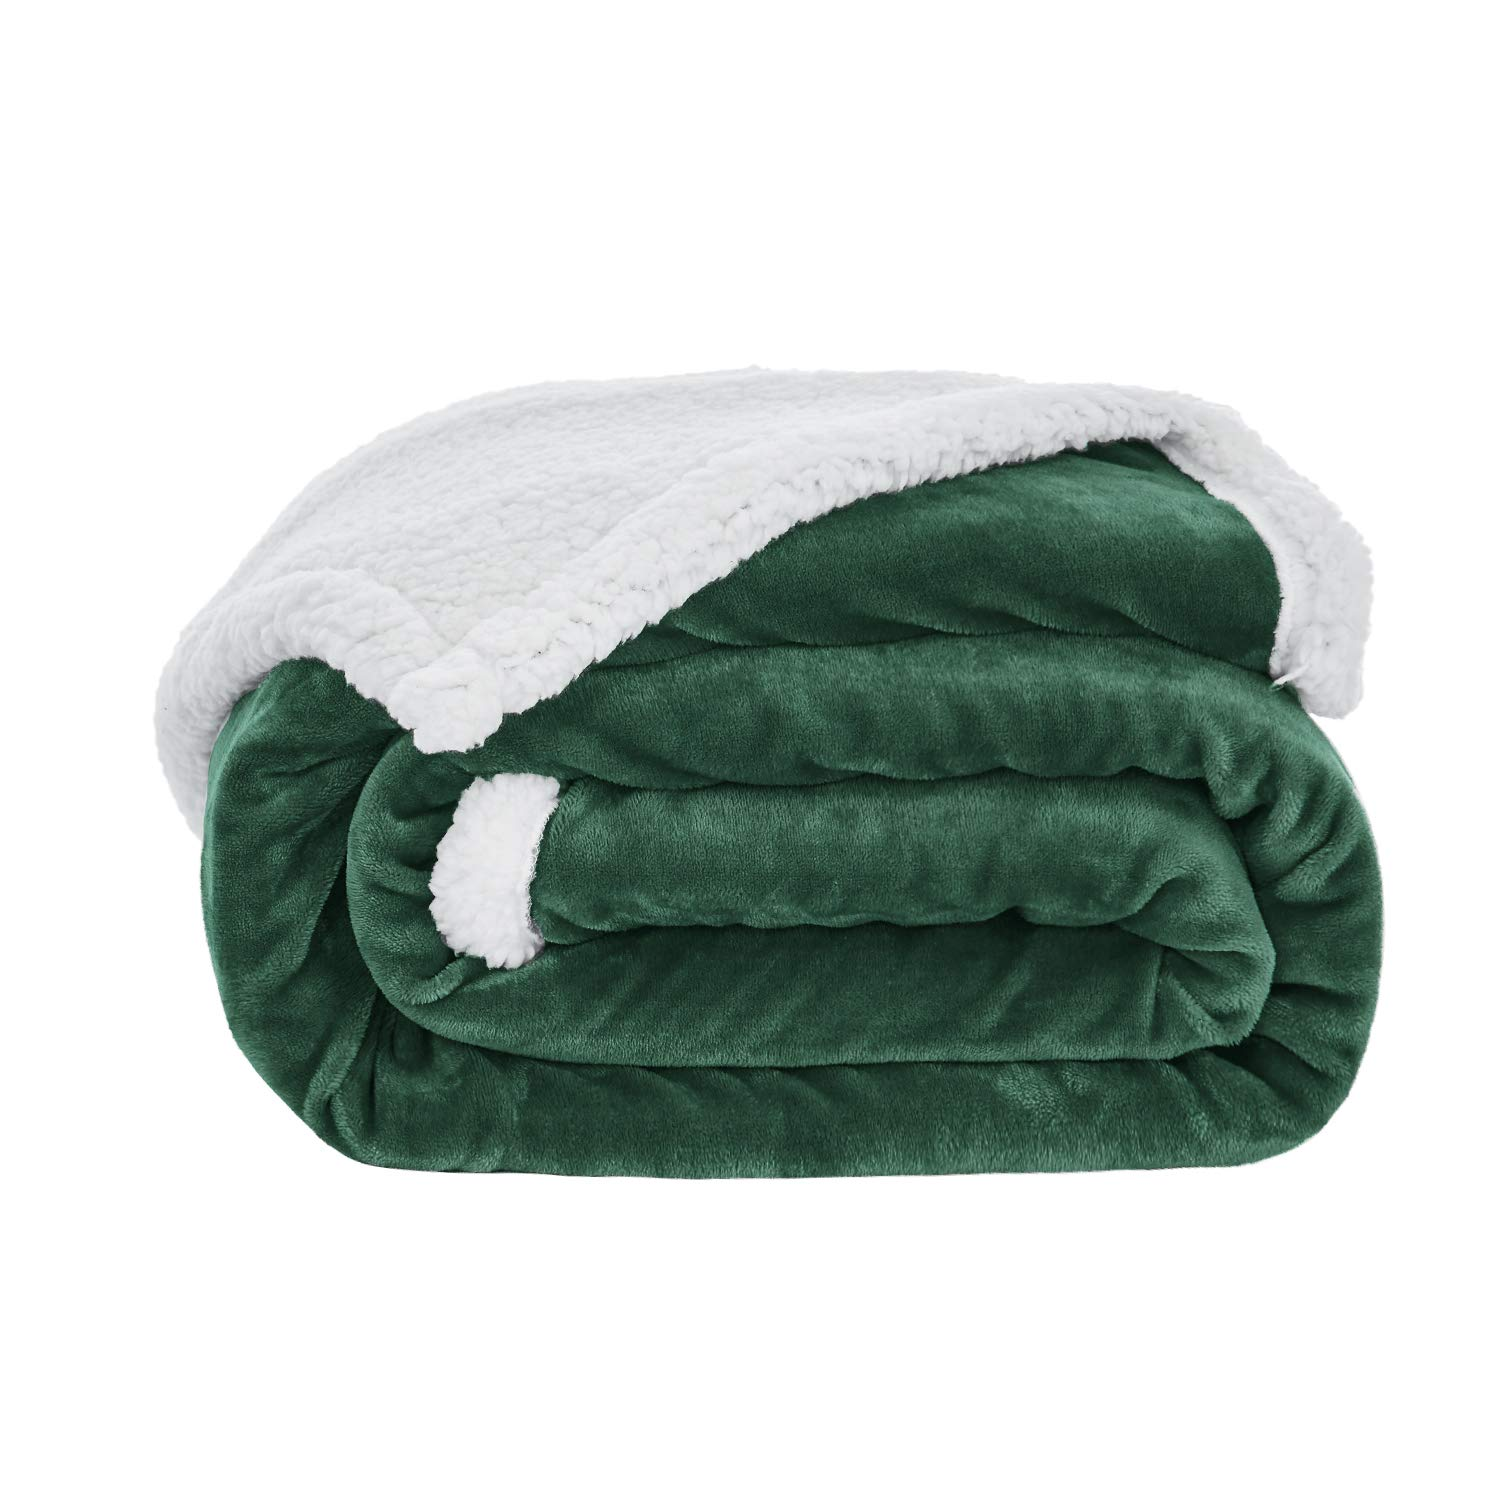 Love's cabin Sherpa Fleece Blanket Throw Size (Green 50x60 Inches) Fuzzy Plush Throw Blanket for Couch or Sofa   Reversible Warm Cozy Soft Blankets for Adults and Kids